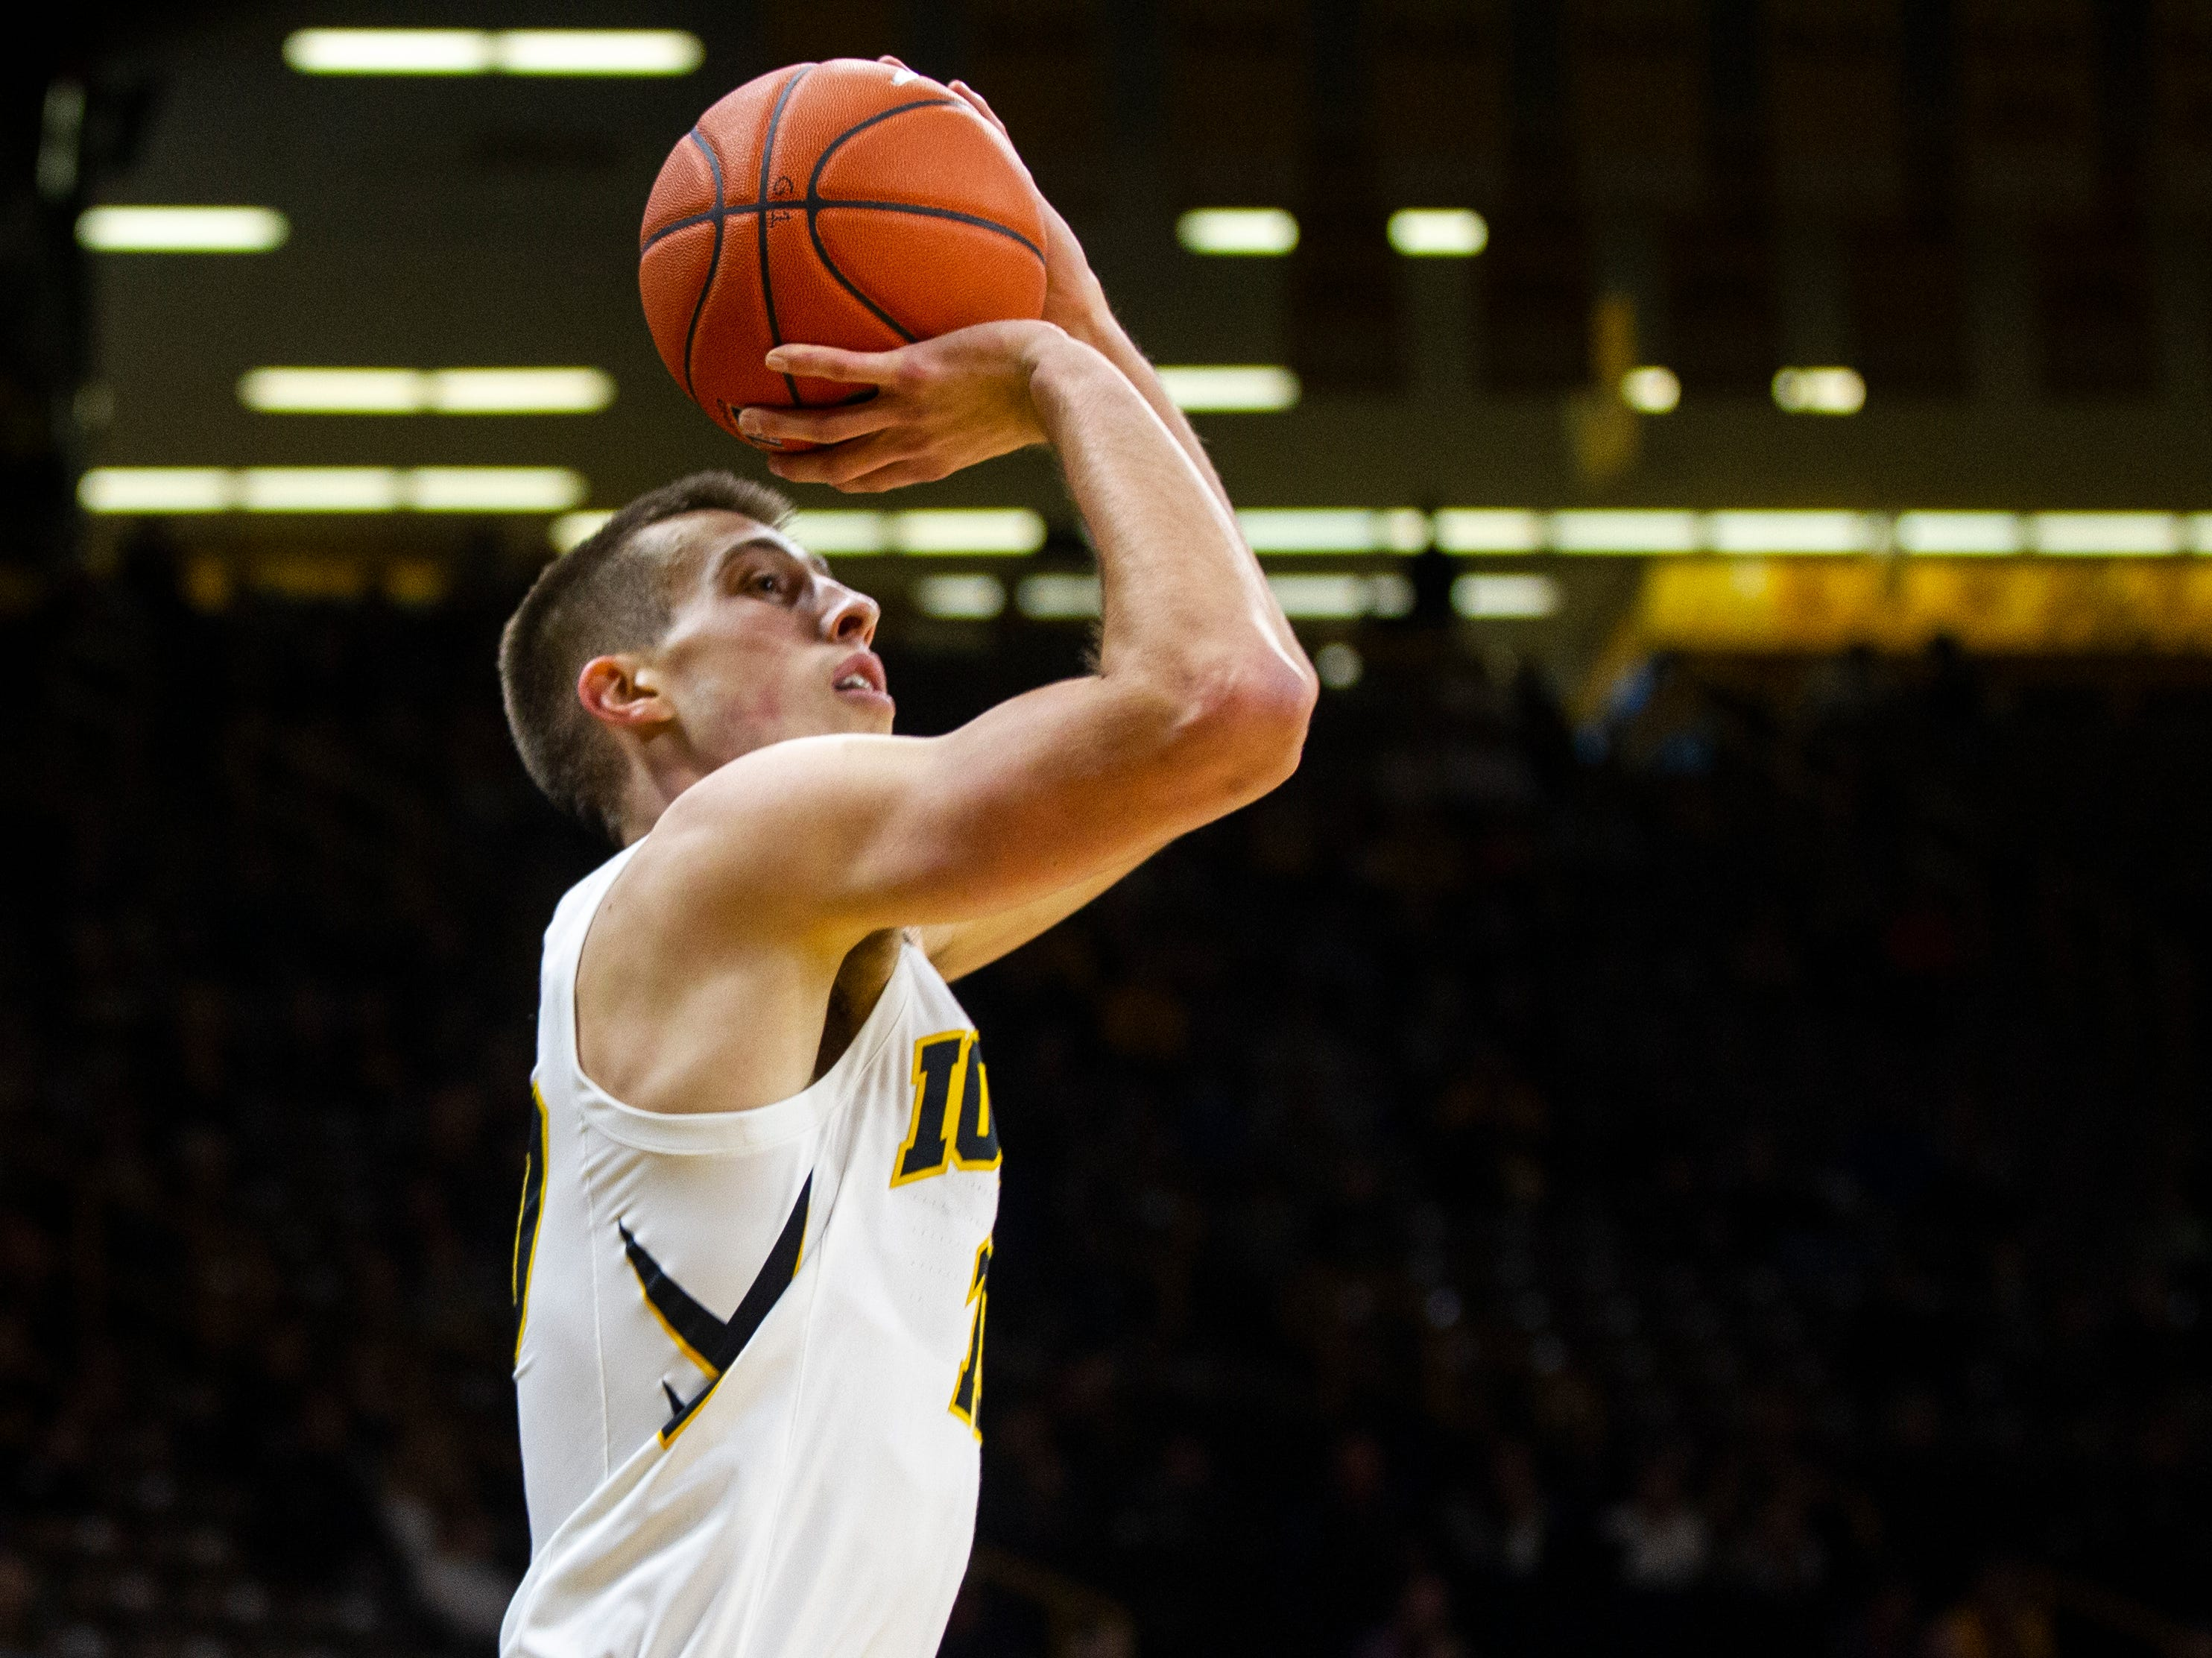 Iowa guard Joe Wieskamp (10) shoots during a men's basketball exhibition game on Sunday, Nov. 4, 2018, at Carver-Hawkeye Arena in Iowa City.